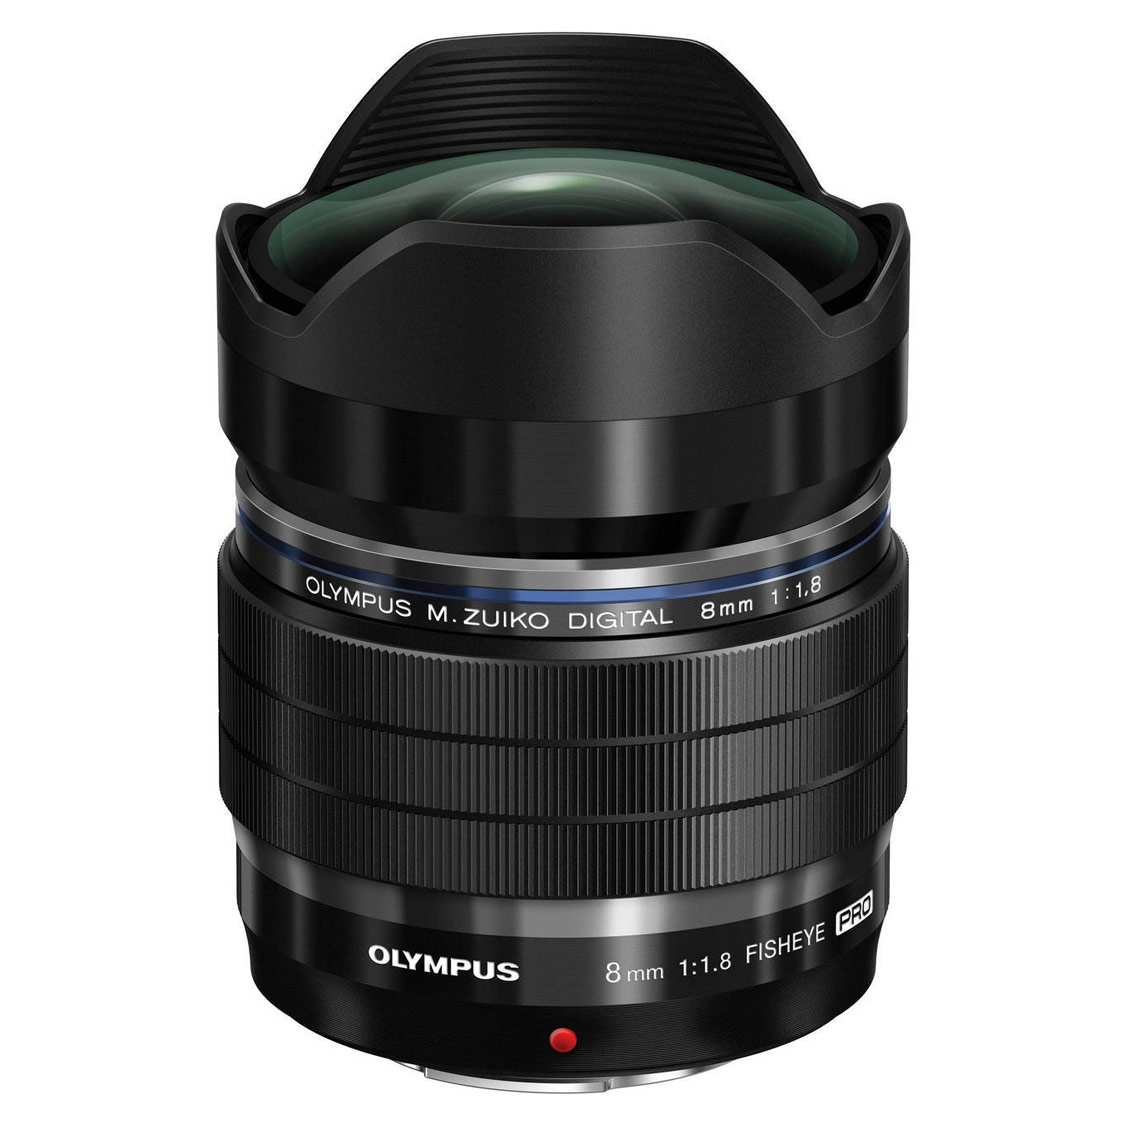 Olympus PEN ED 8mm F1.8 Fisheye Pro Lens (black)